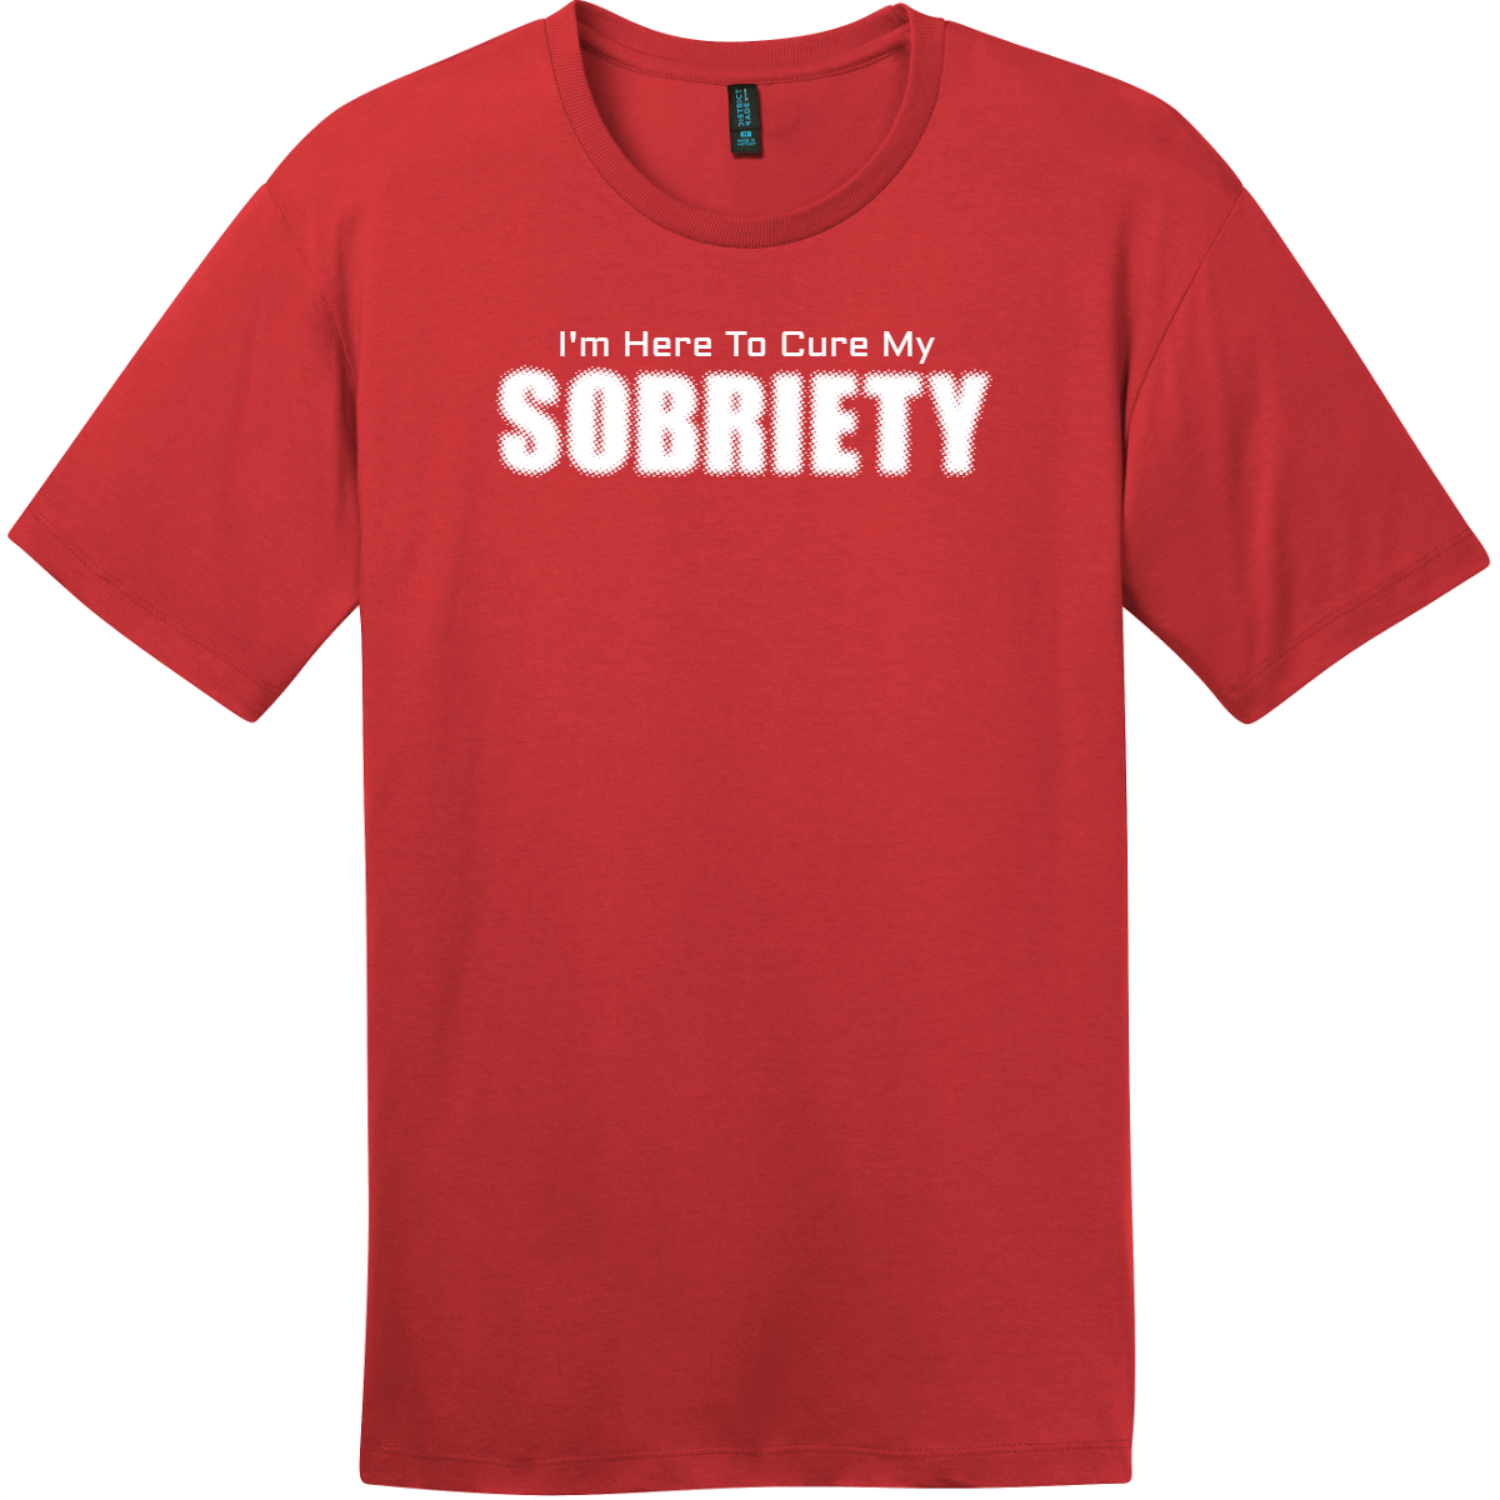 I Am Here To Cure My Sobriety T-Shirt Classic Red District Perfect Weight Tee DT104